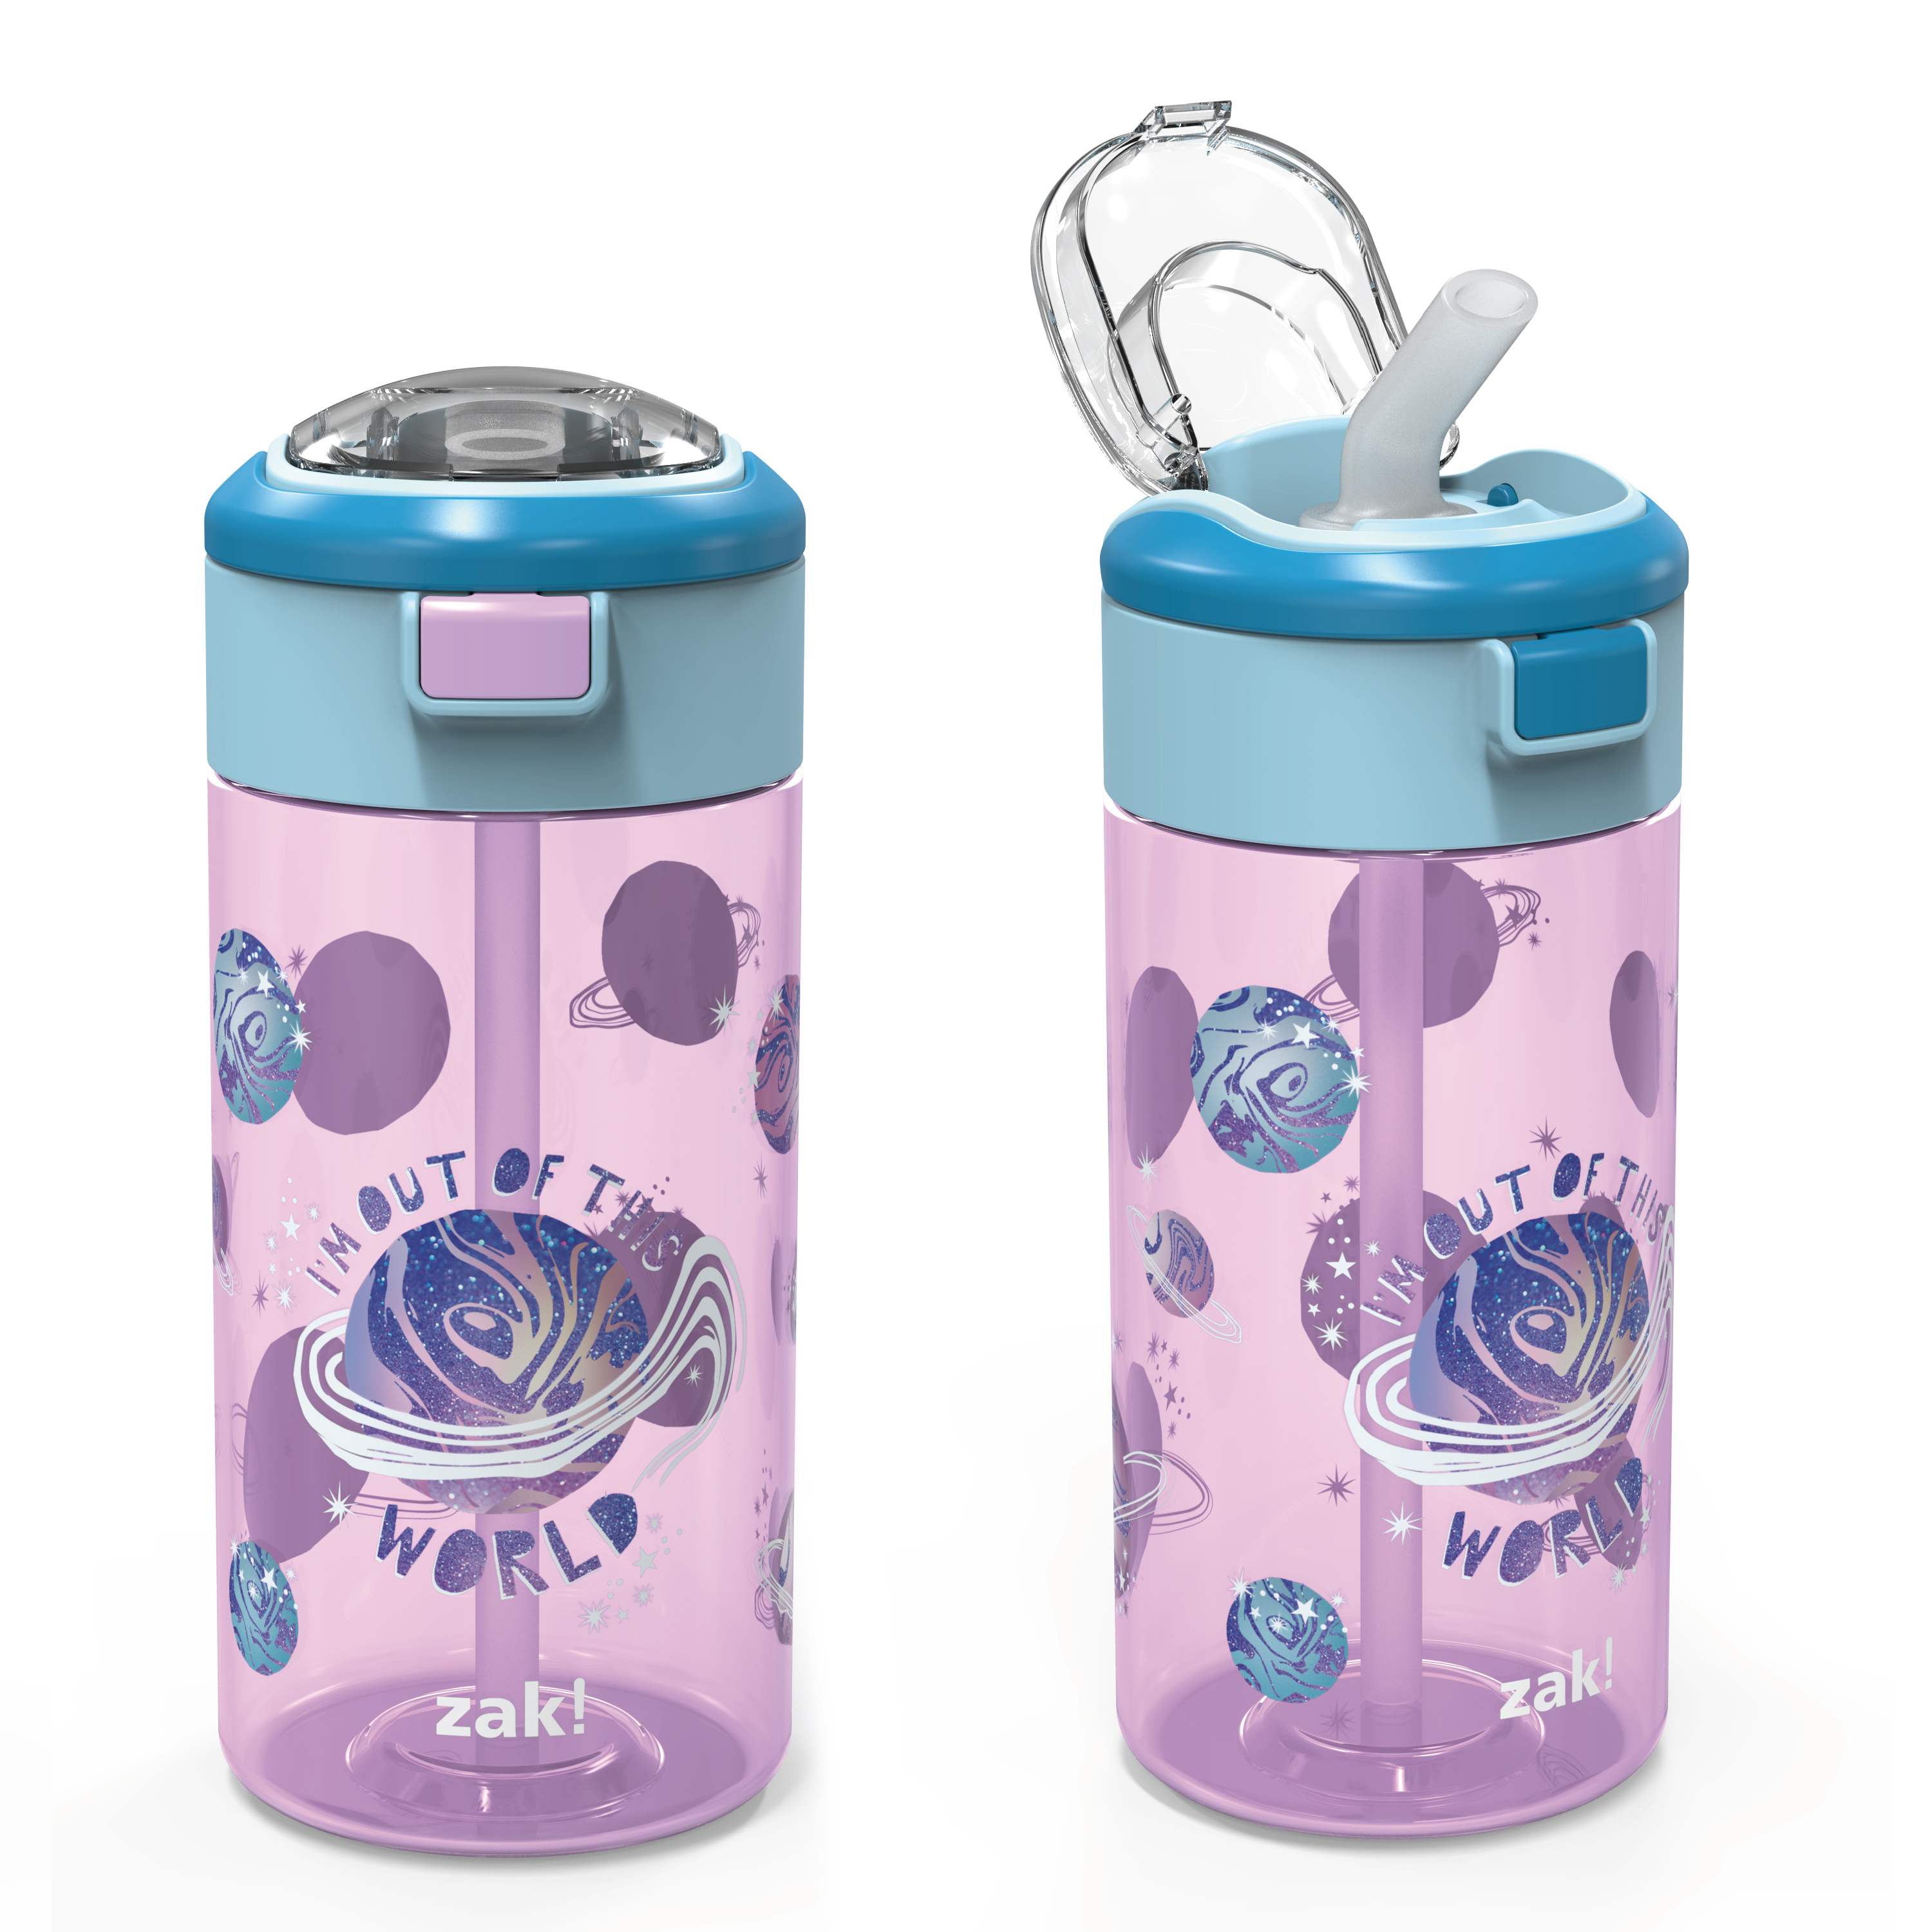 Genesis 18 ounce Water Bottles, Planet, 2-piece set slideshow image 5